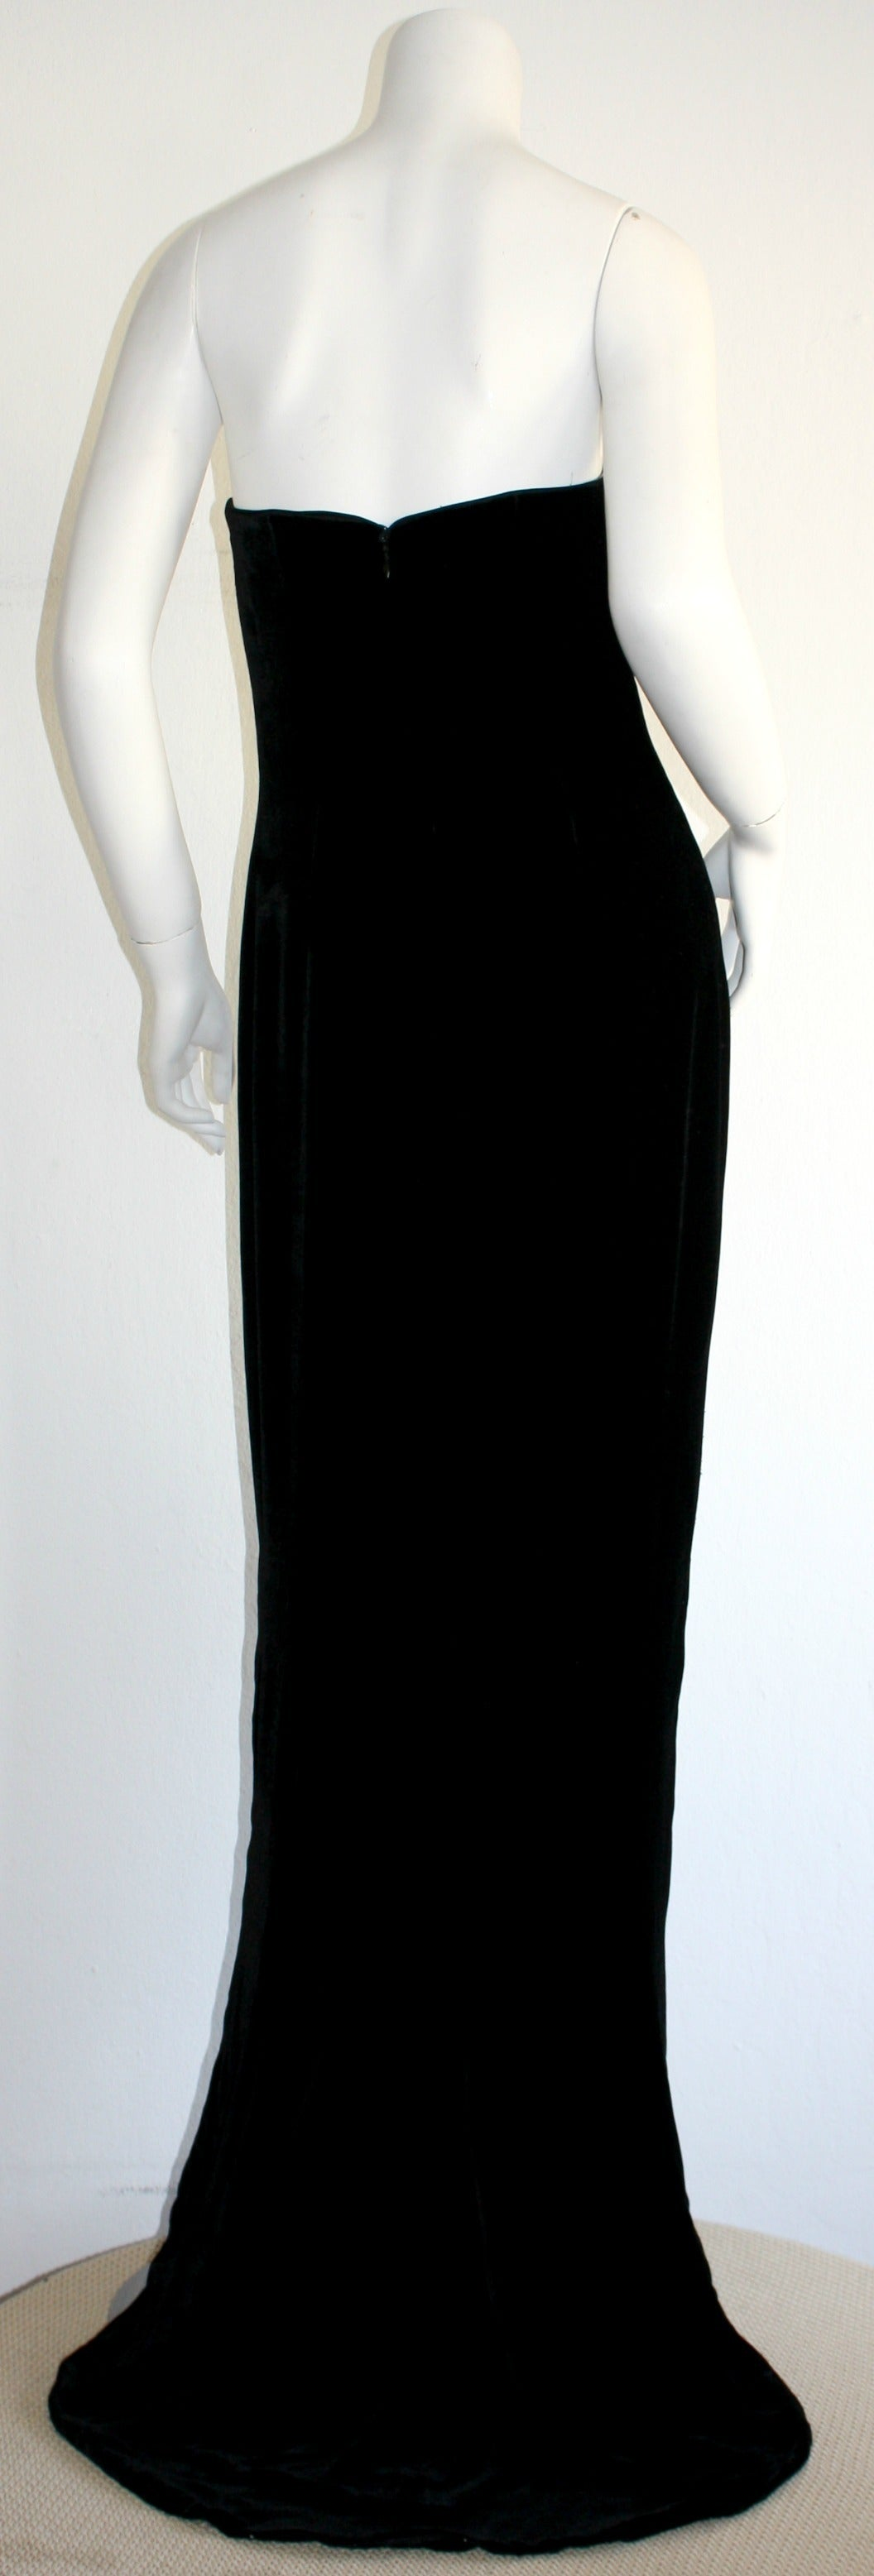 Drop dead gorgeous James Purcell black silk velvet strapless gown! Purcell was a very sought after designer in the late eighties/early nineties. However, his attention to intricate detailing, and his love for only the finest (most expensive fabrics)